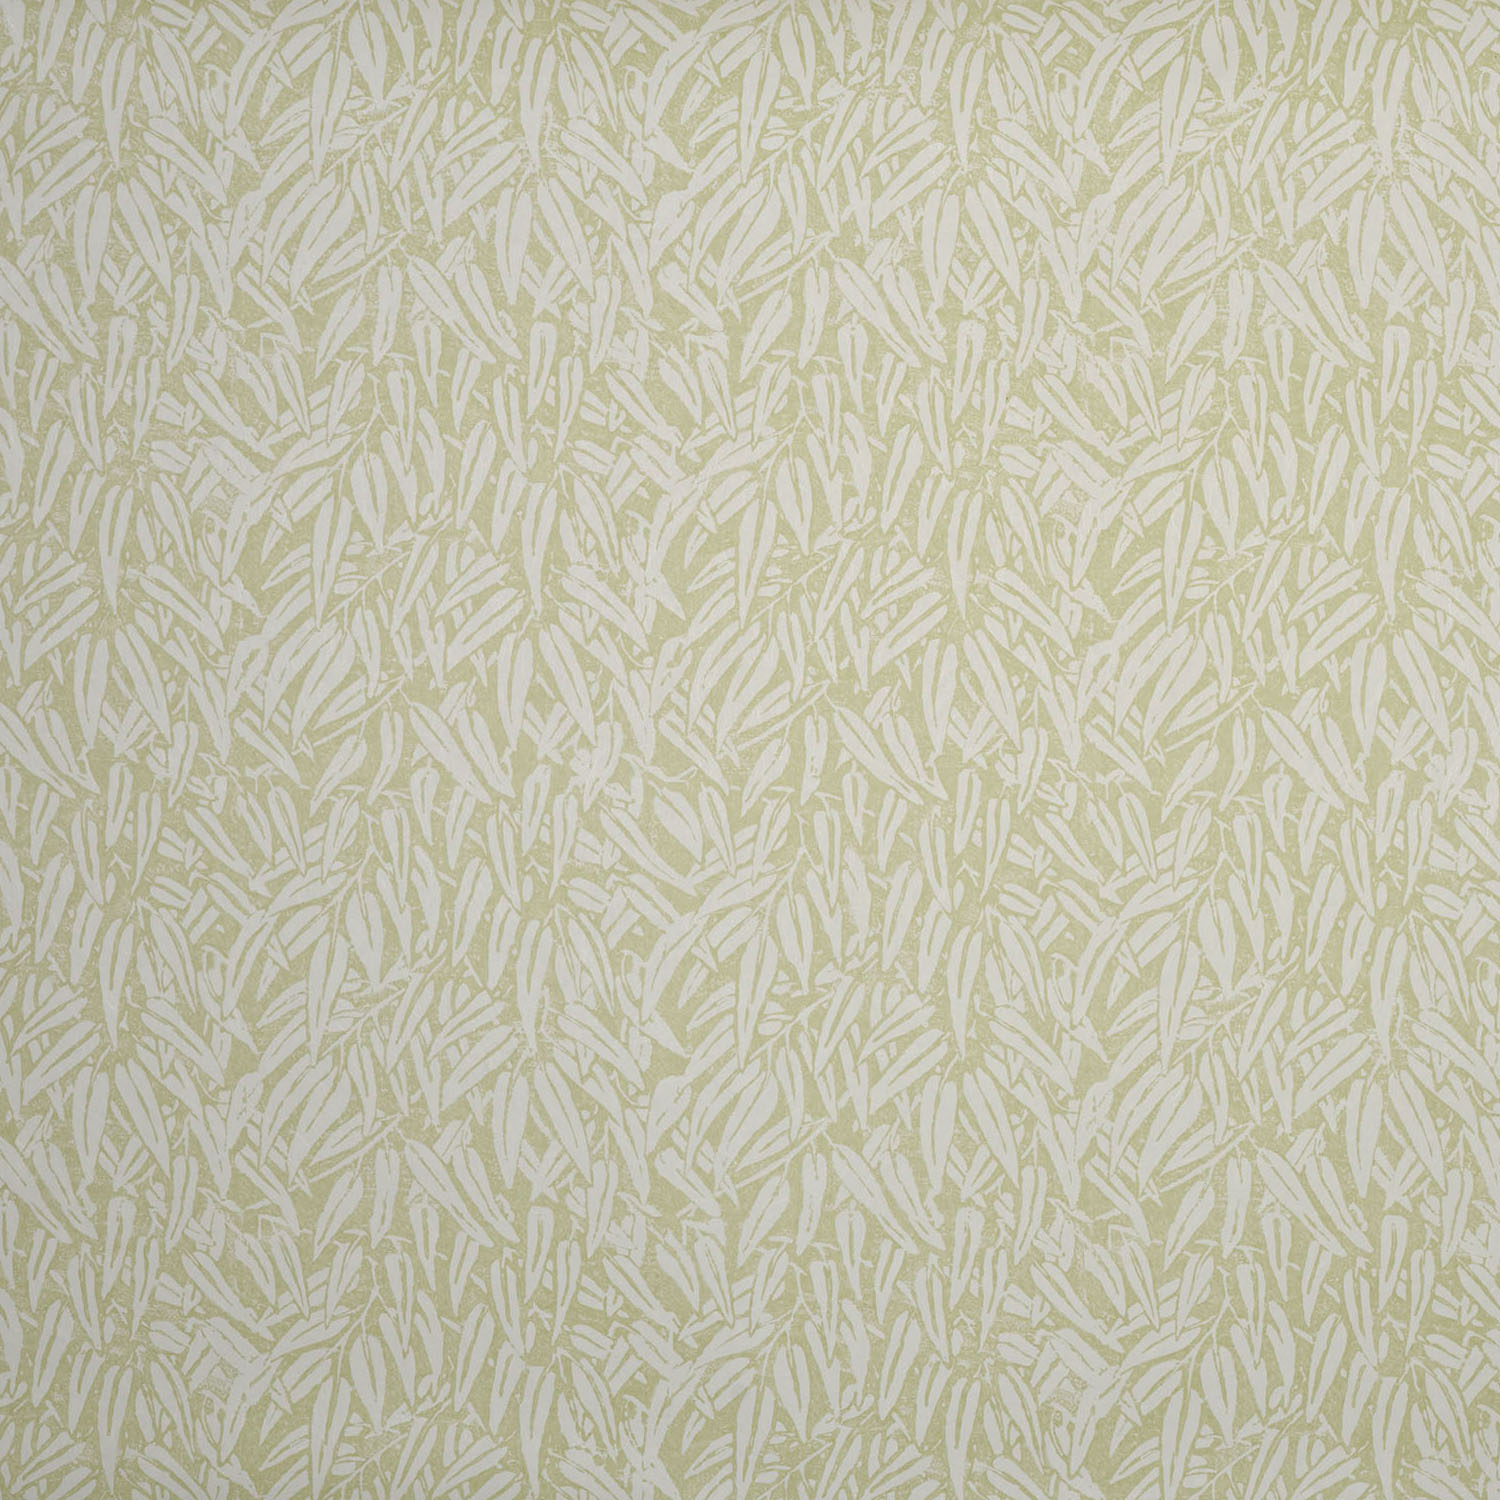 <p><strong>WILLOW</strong>lime 860-06<a href=/the-peggy-angus-collection/willow-lime-860-06>More →</a></p>